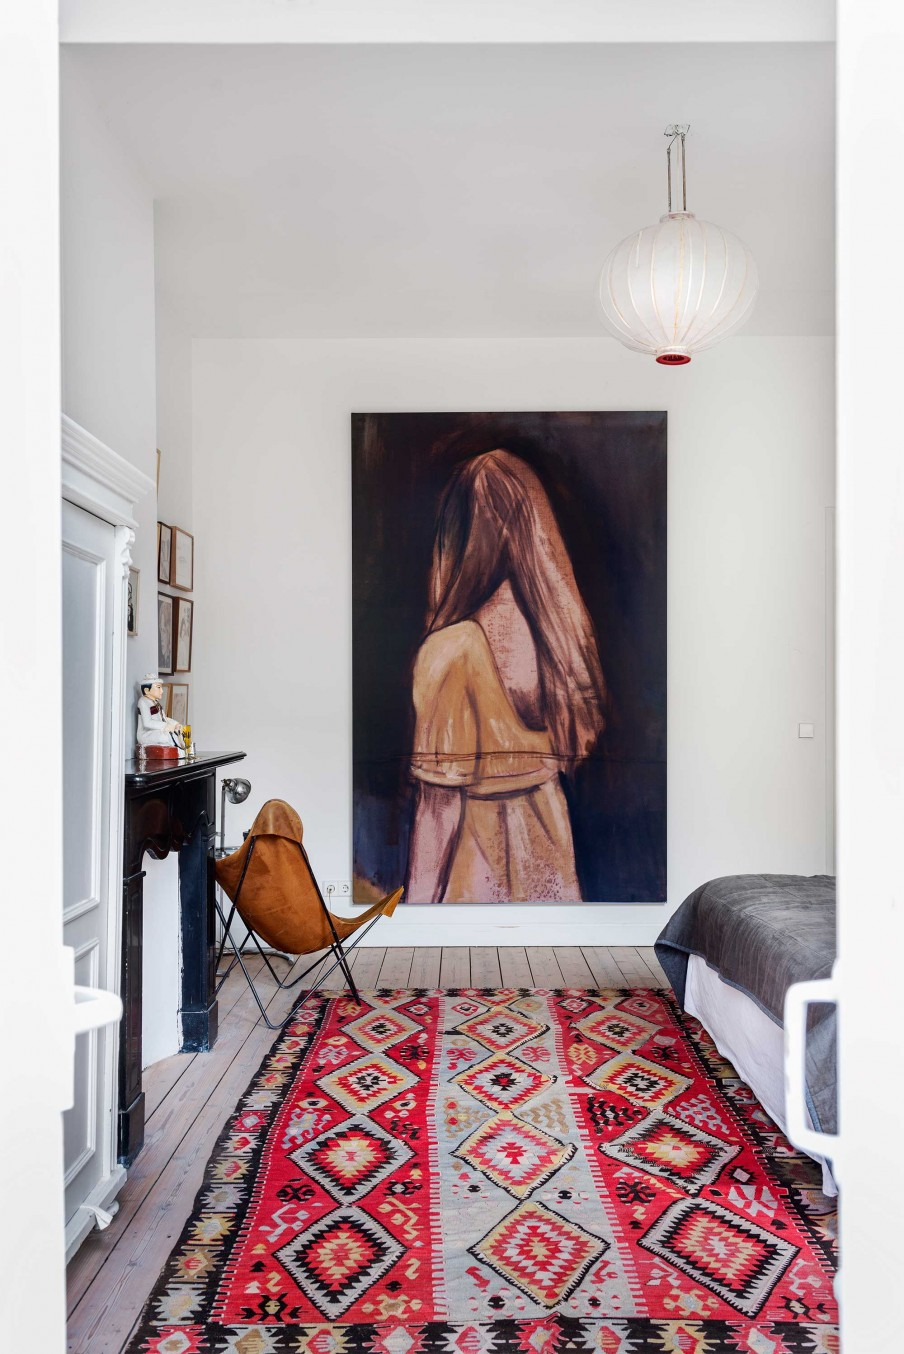 06-The-bedroom-boasts-of-colorful-boho-textiles-artworks-a-black-fireplace-and-a-mid-century-leather-chair